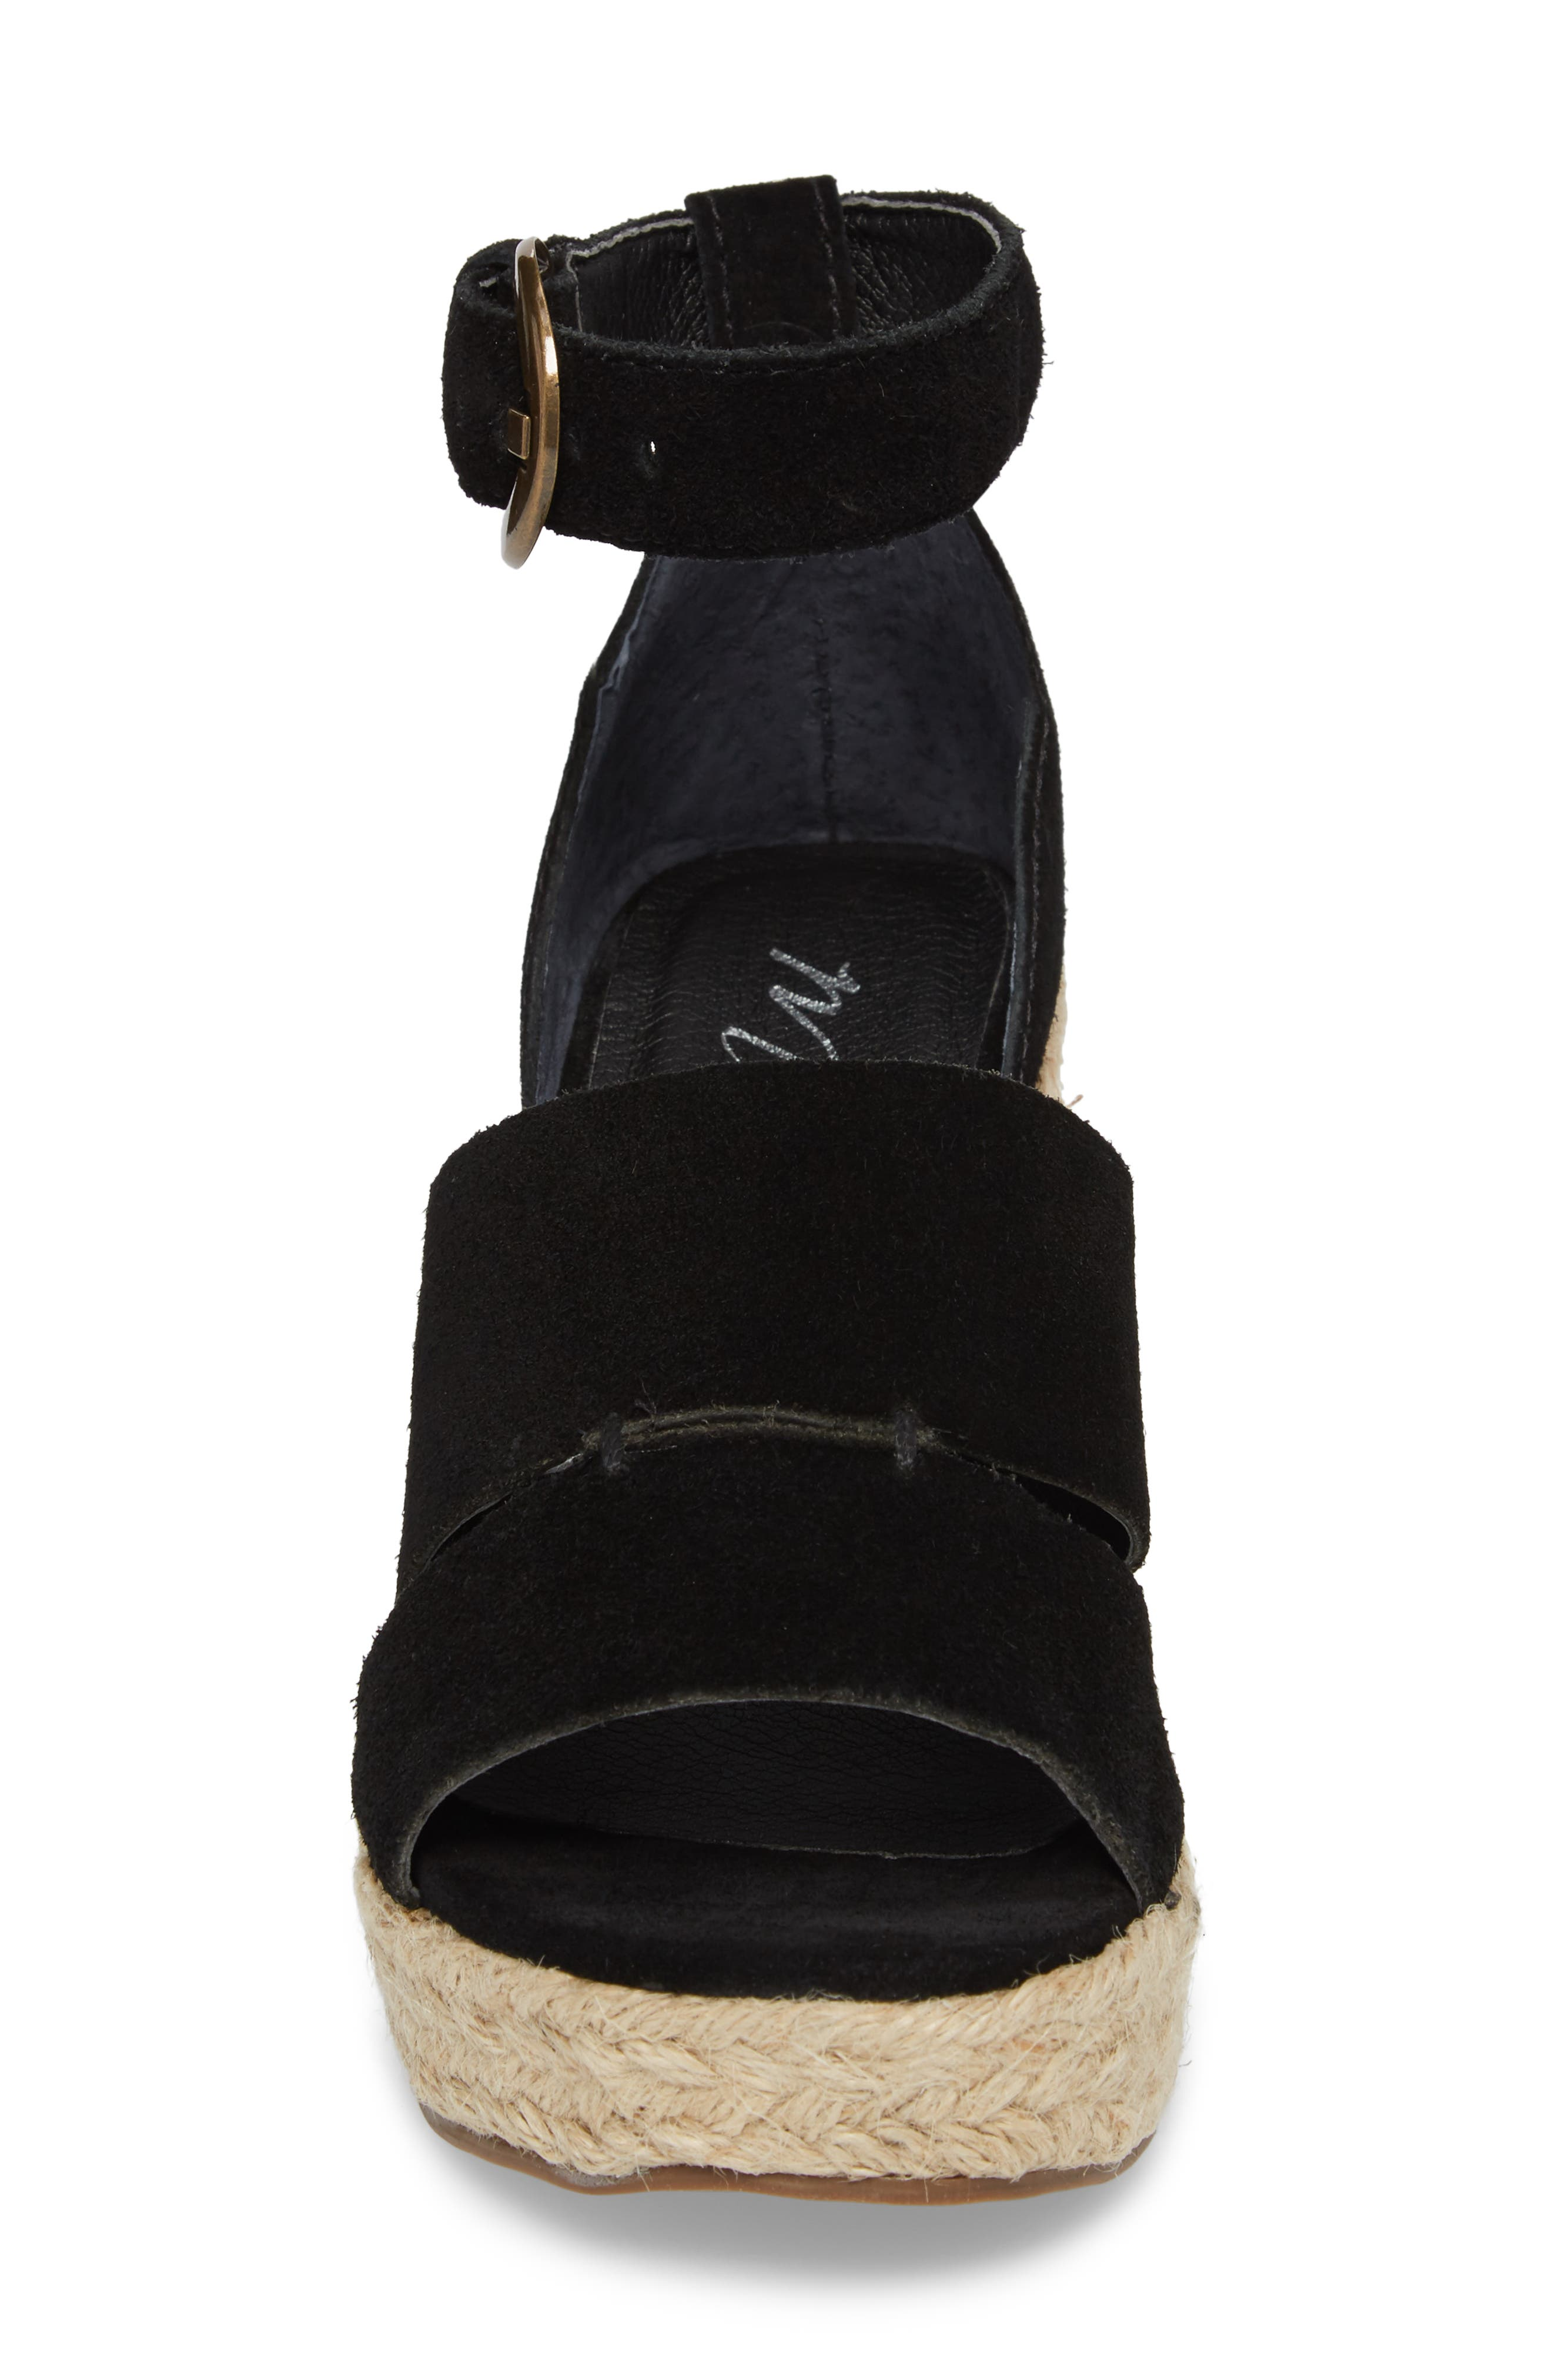 Cha Cha Espadrille Wedge Sandal,                             Alternate thumbnail 4, color,                             BLACK SUEDE